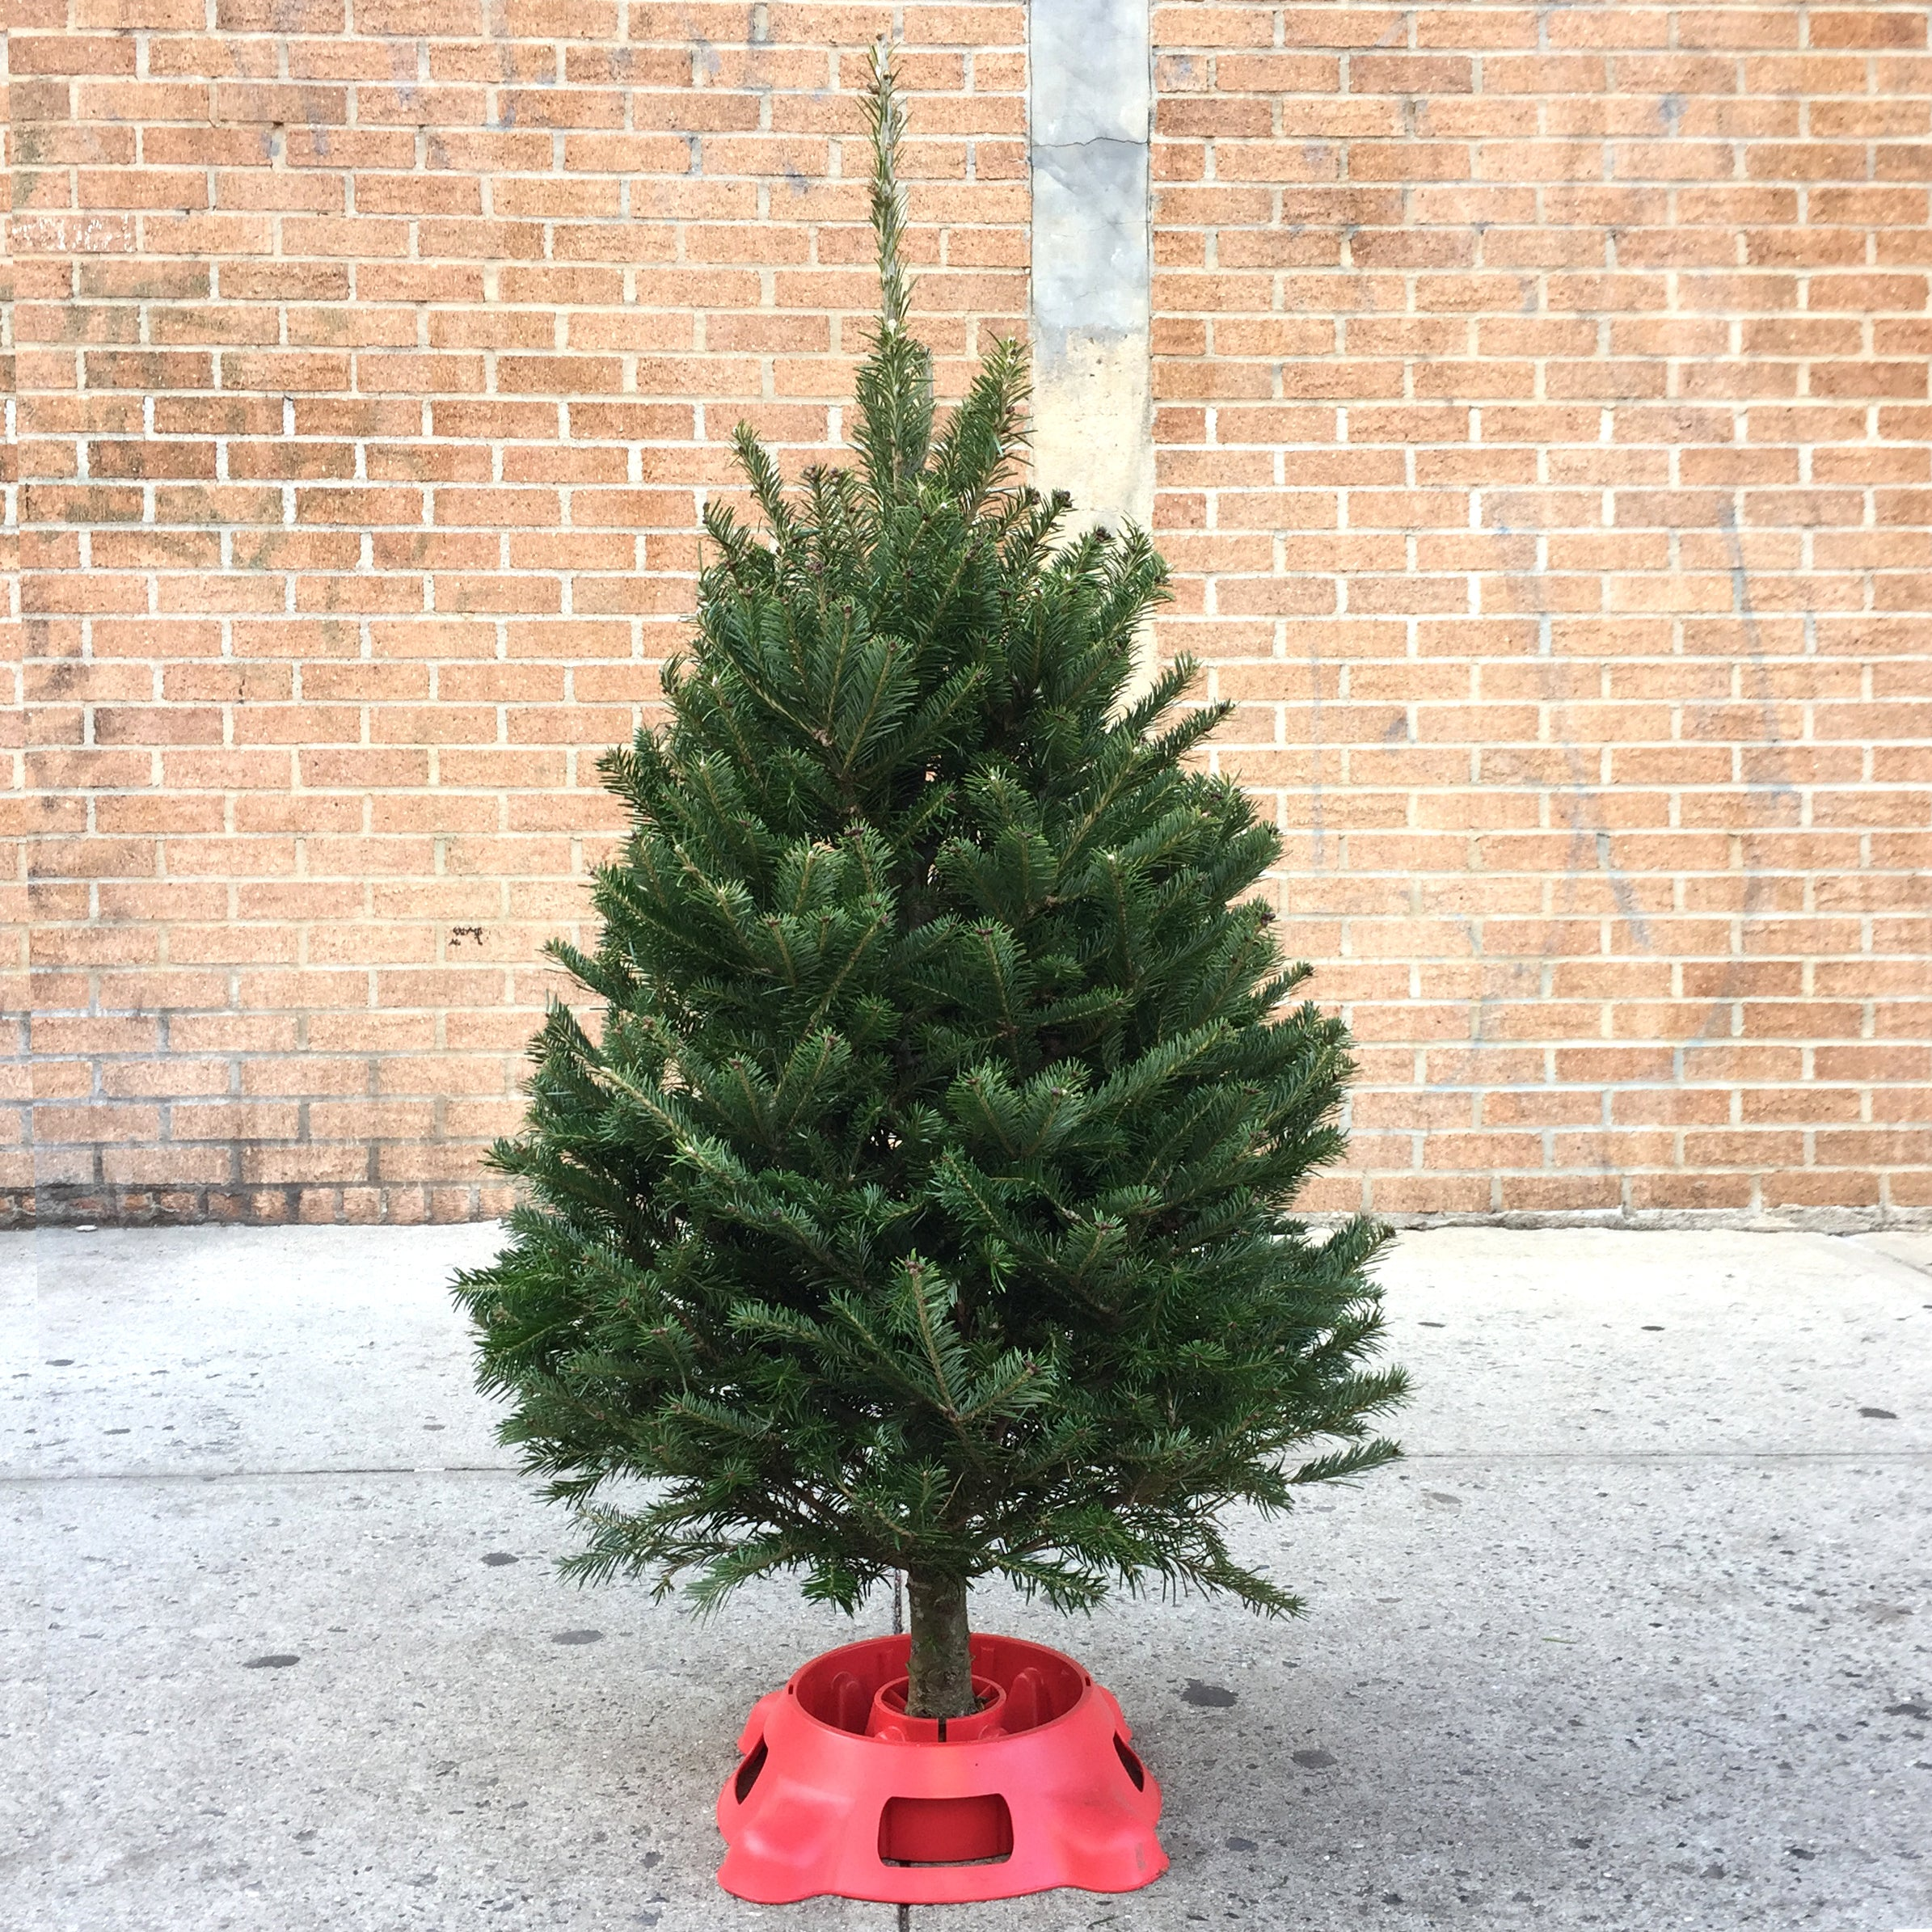 Mini 3-4' Christmas Tree